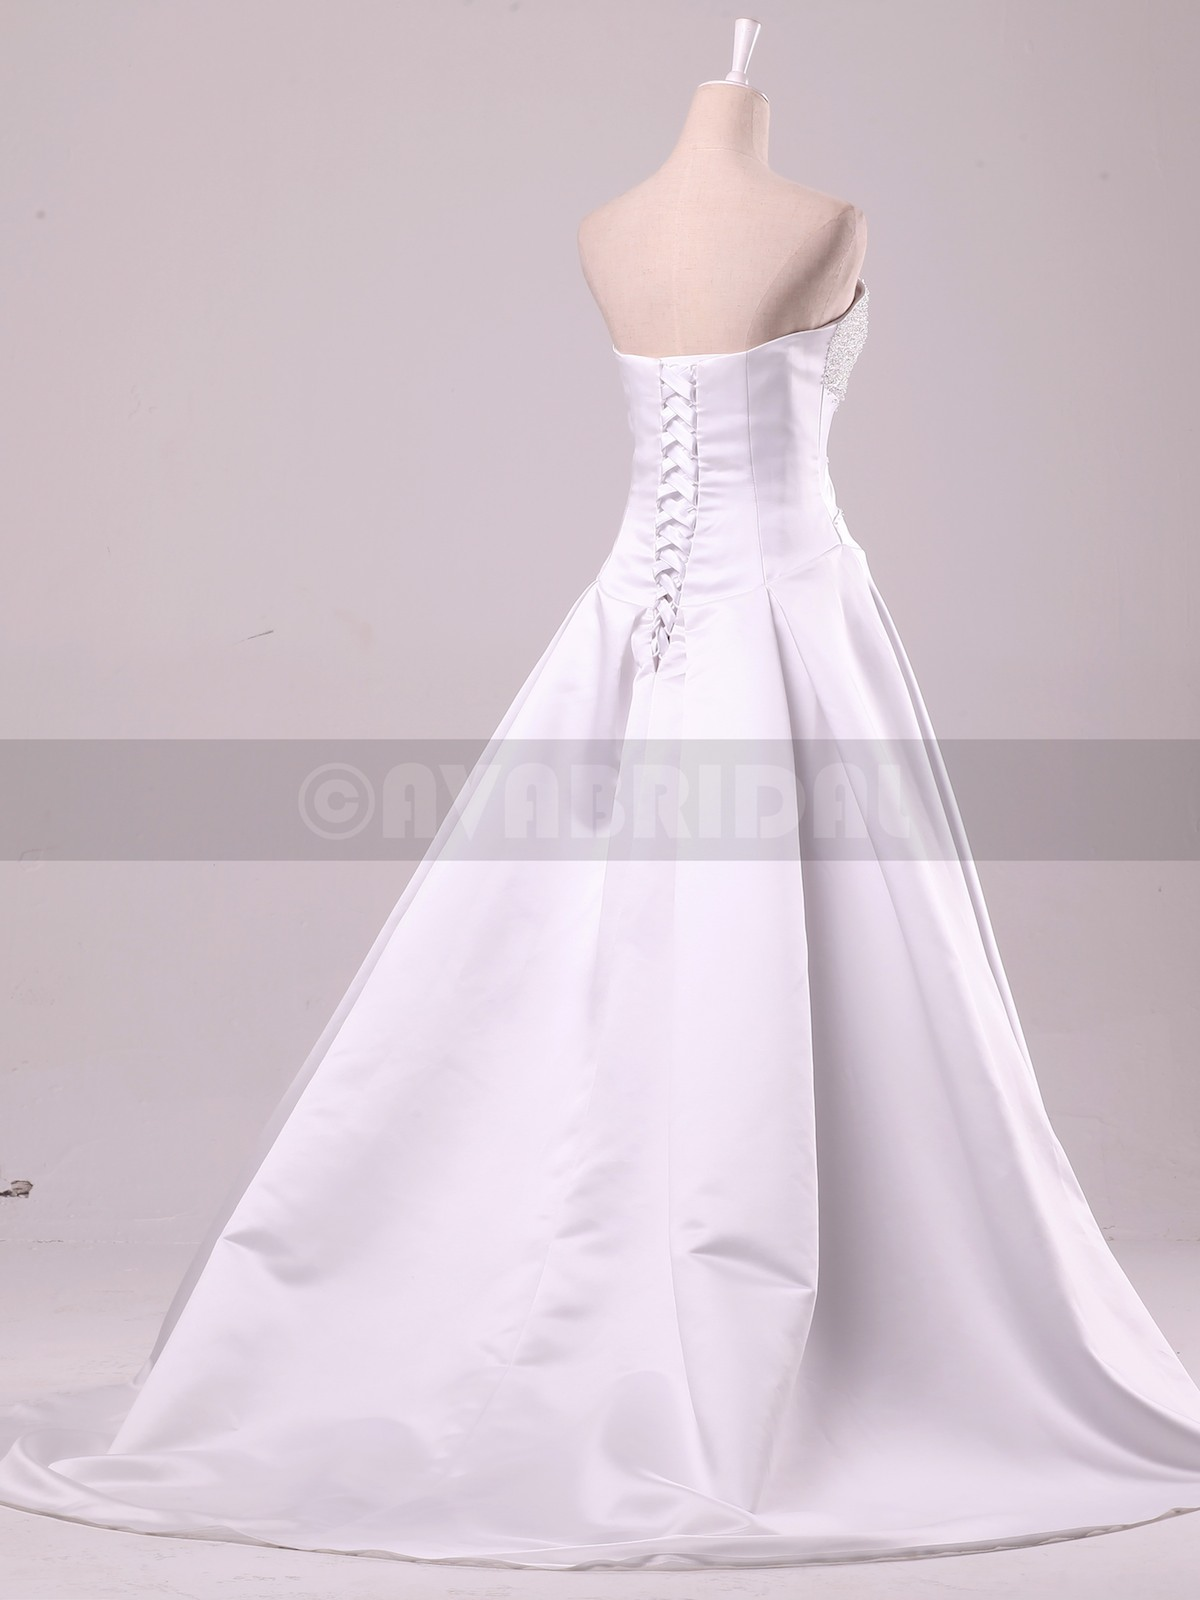 Plus Size Wedding Dresses Va : Stunning beaded satin bridal gown ceceilia